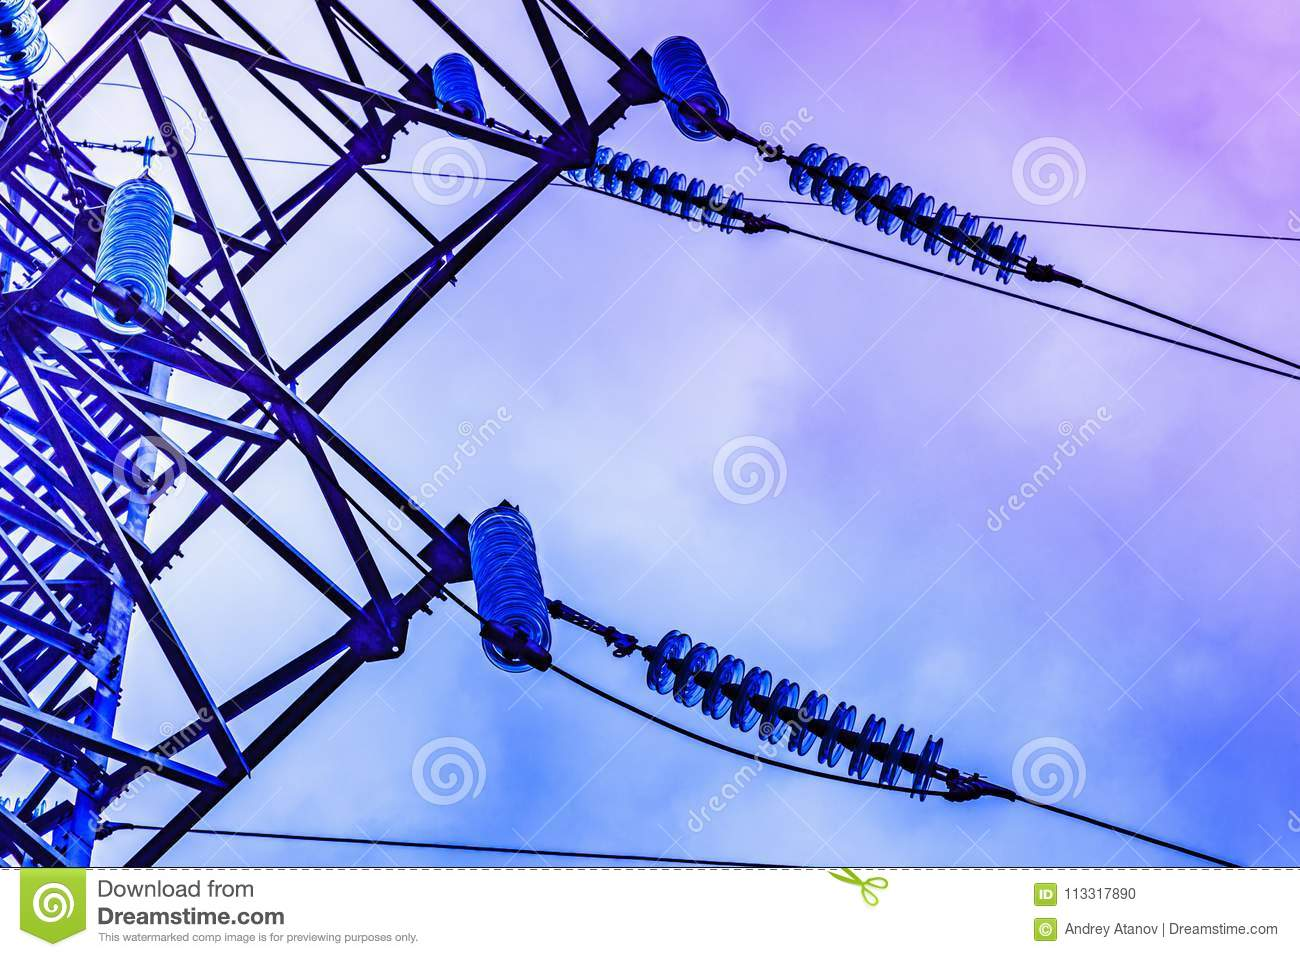 Parts Of High Voltage Electricity Pylons And Transmission Power ...